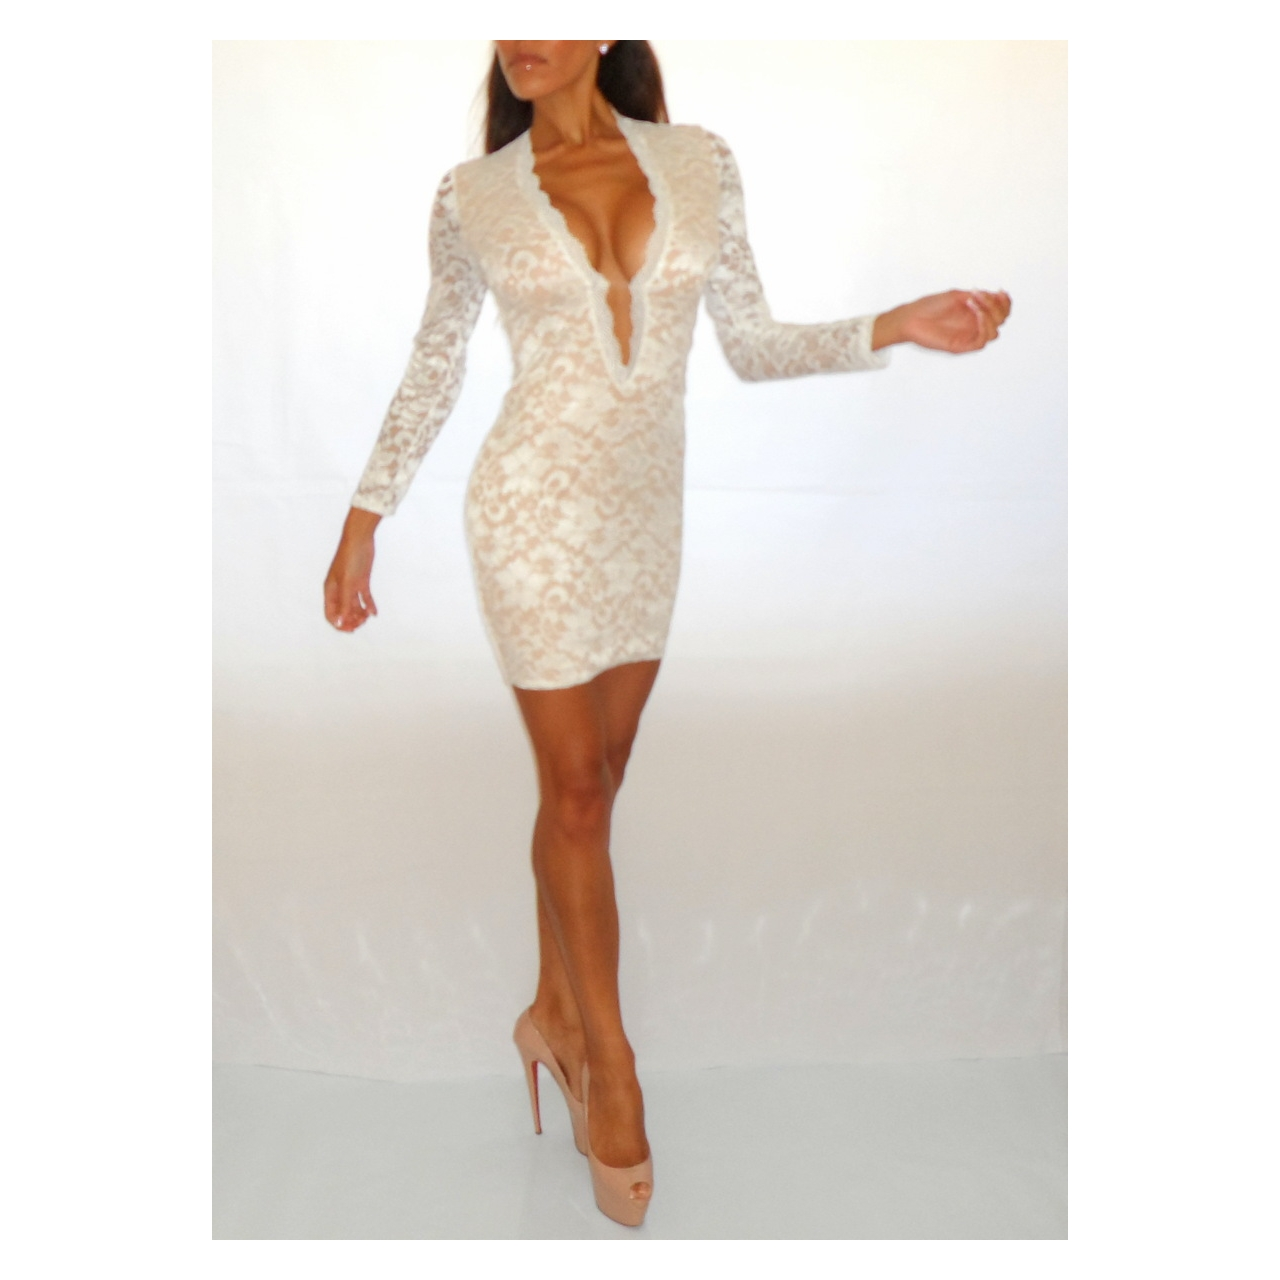 2d5ee3eb8261 OFF WHITE CREAM DEEP PLUNGE LACE BODYCON DRESS - Rocka Frock